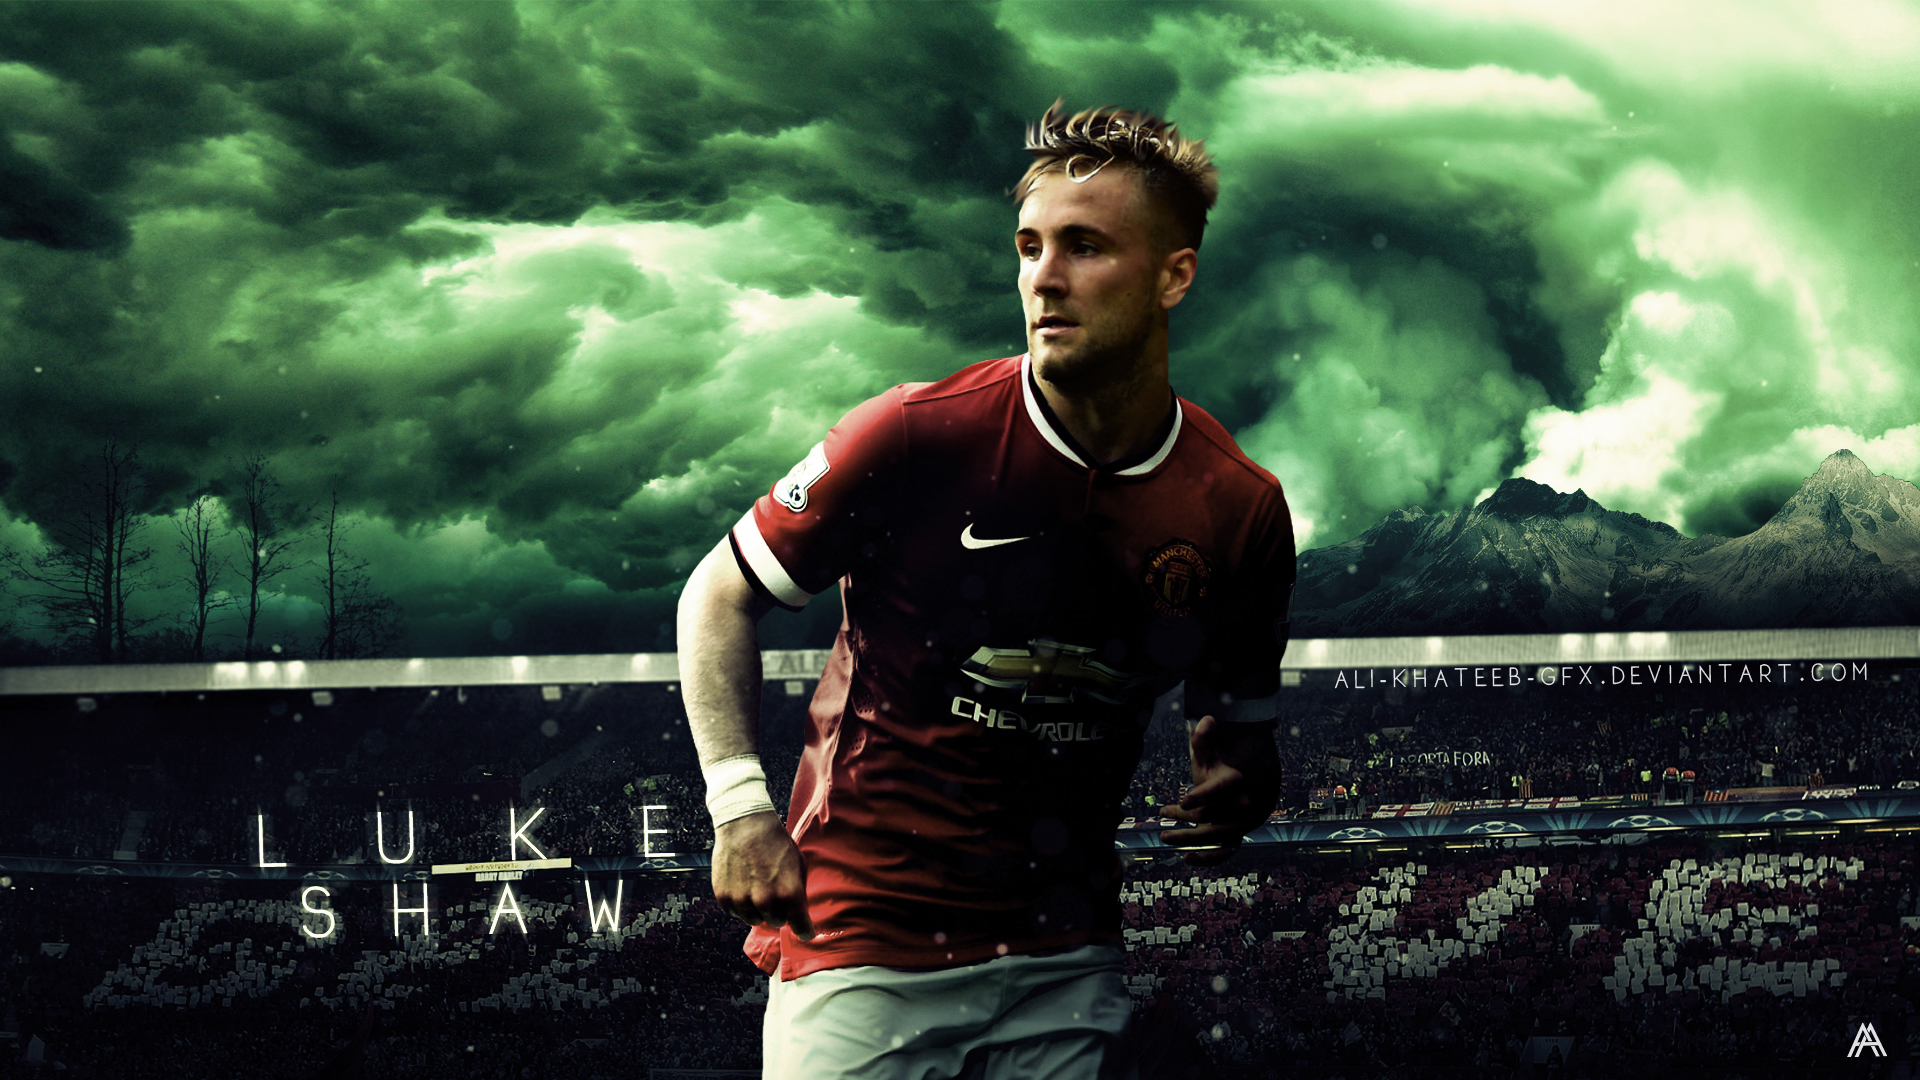 Manchester United Luke_shaw__manu__hd_wallpaper_by_ali_khateeb_gfx-d8arta3